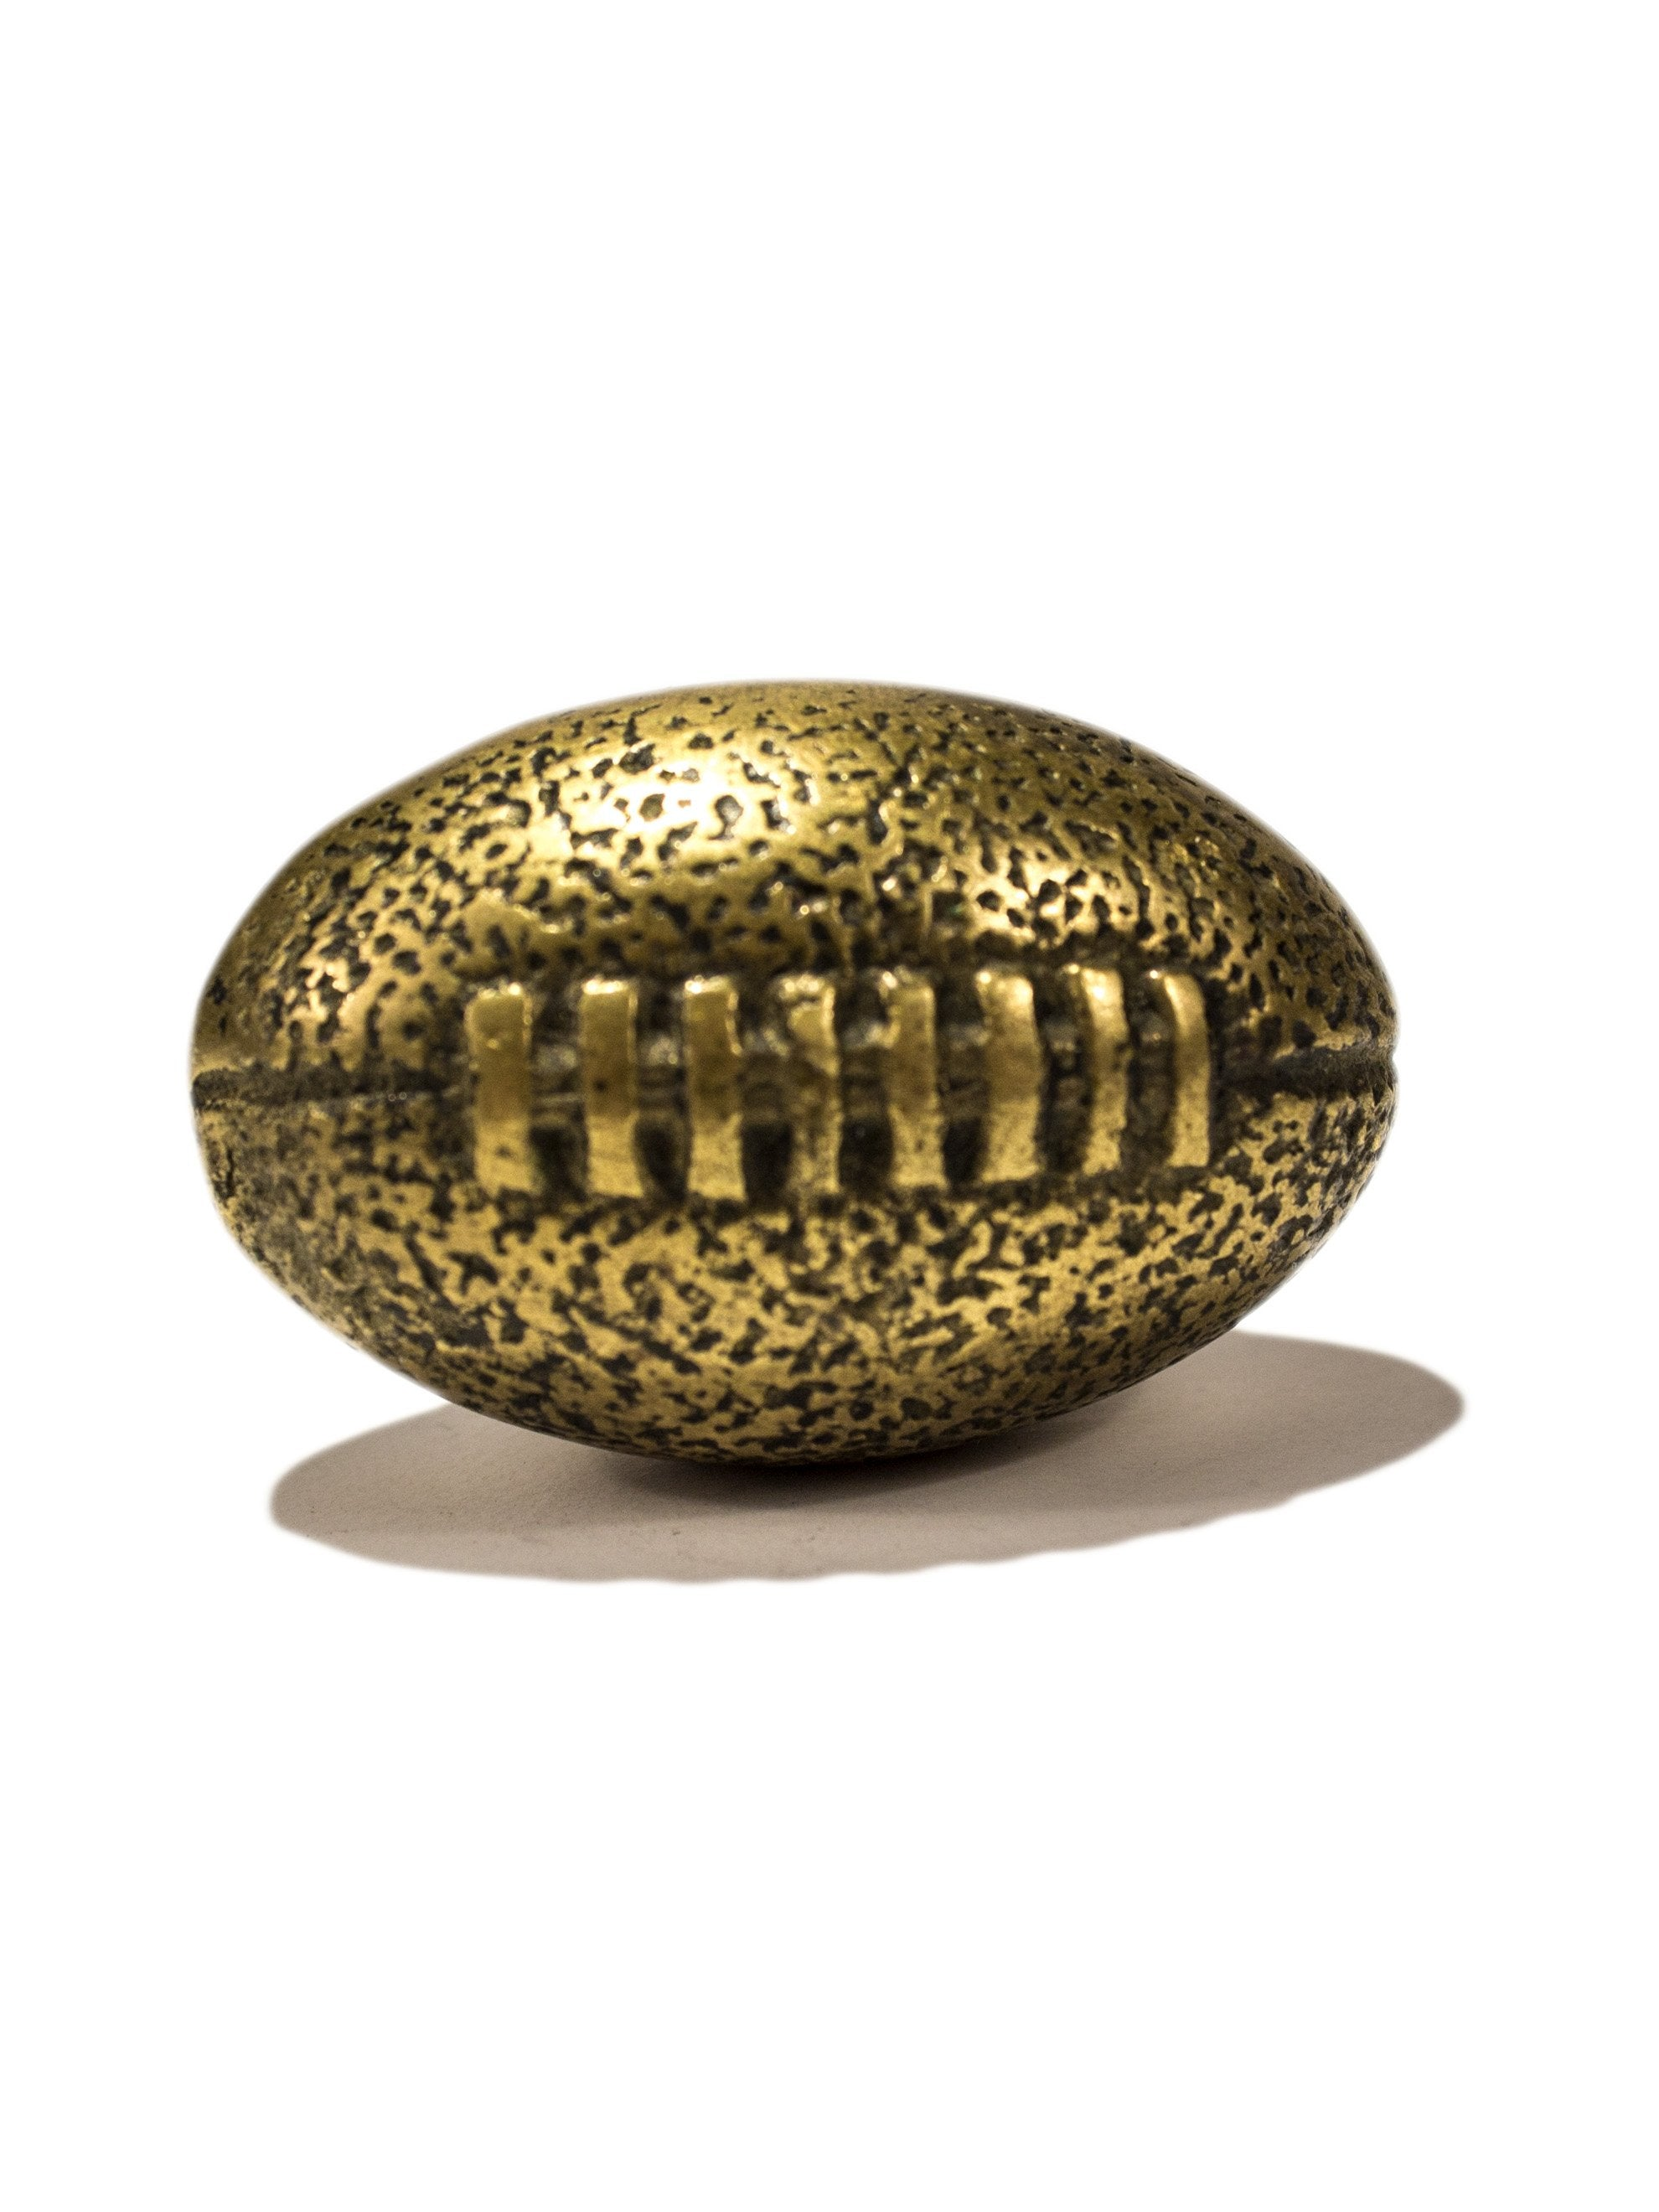 Brass 1950's Solid Brass Football Desktop Weight 2